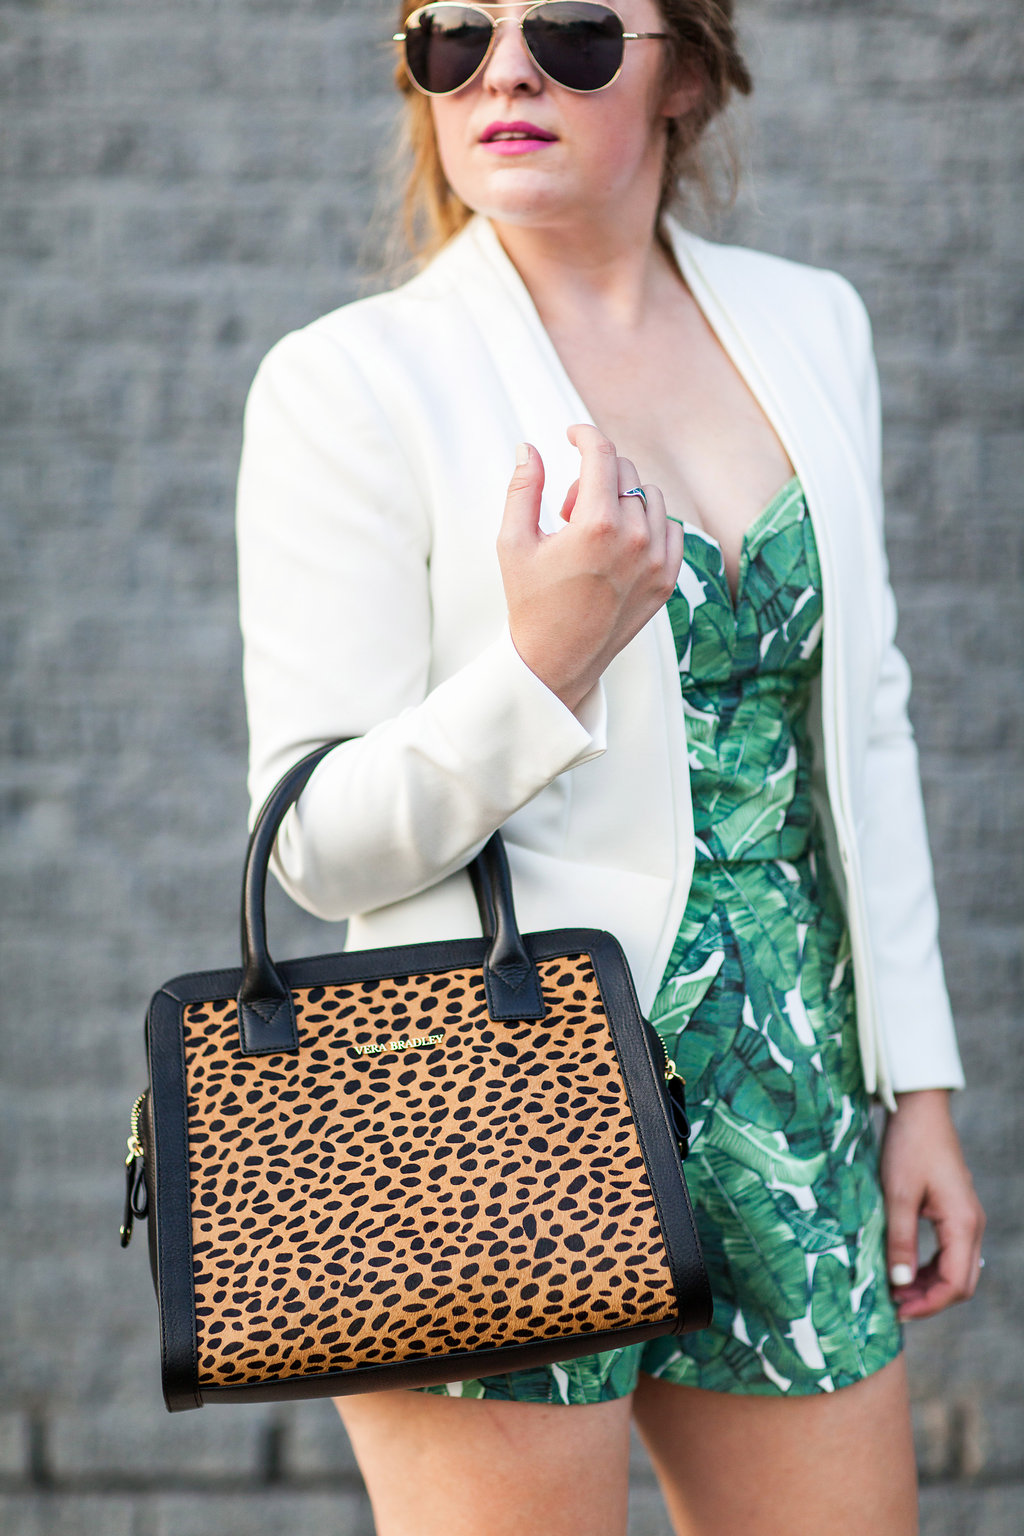 Palm print and leopard outfit